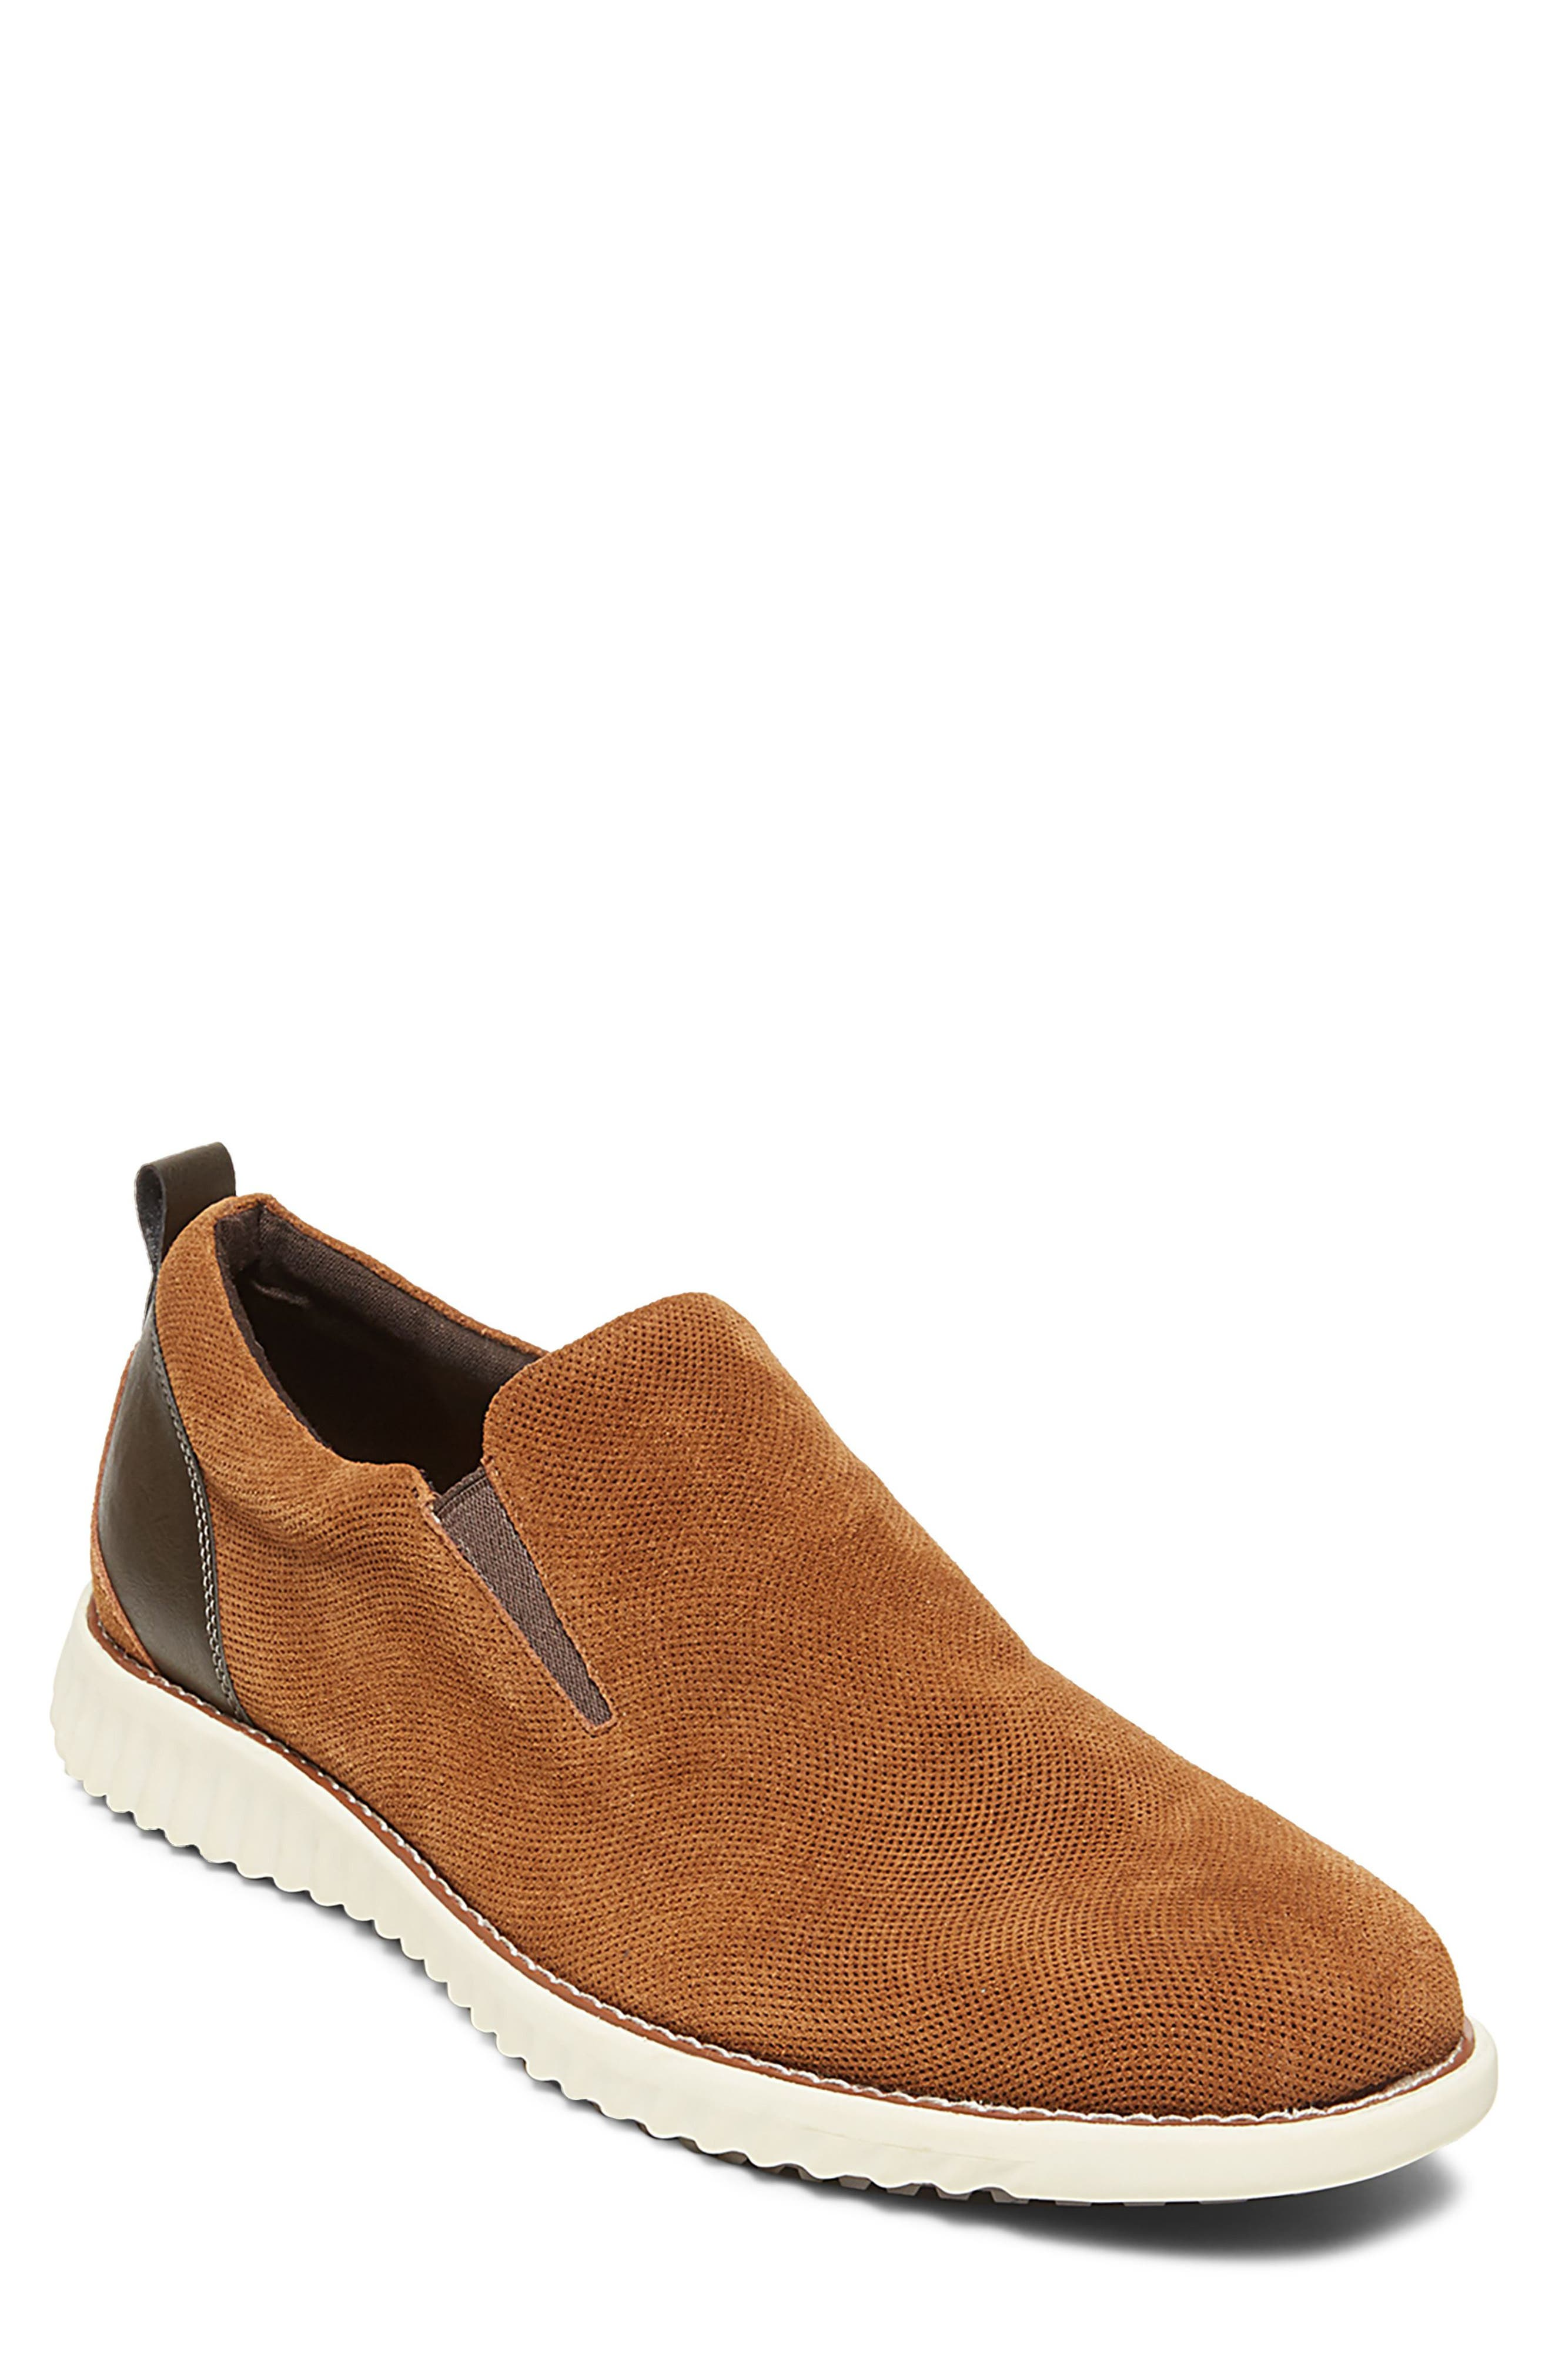 Virgil Slip-On,                             Main thumbnail 1, color,                             Tan Suede